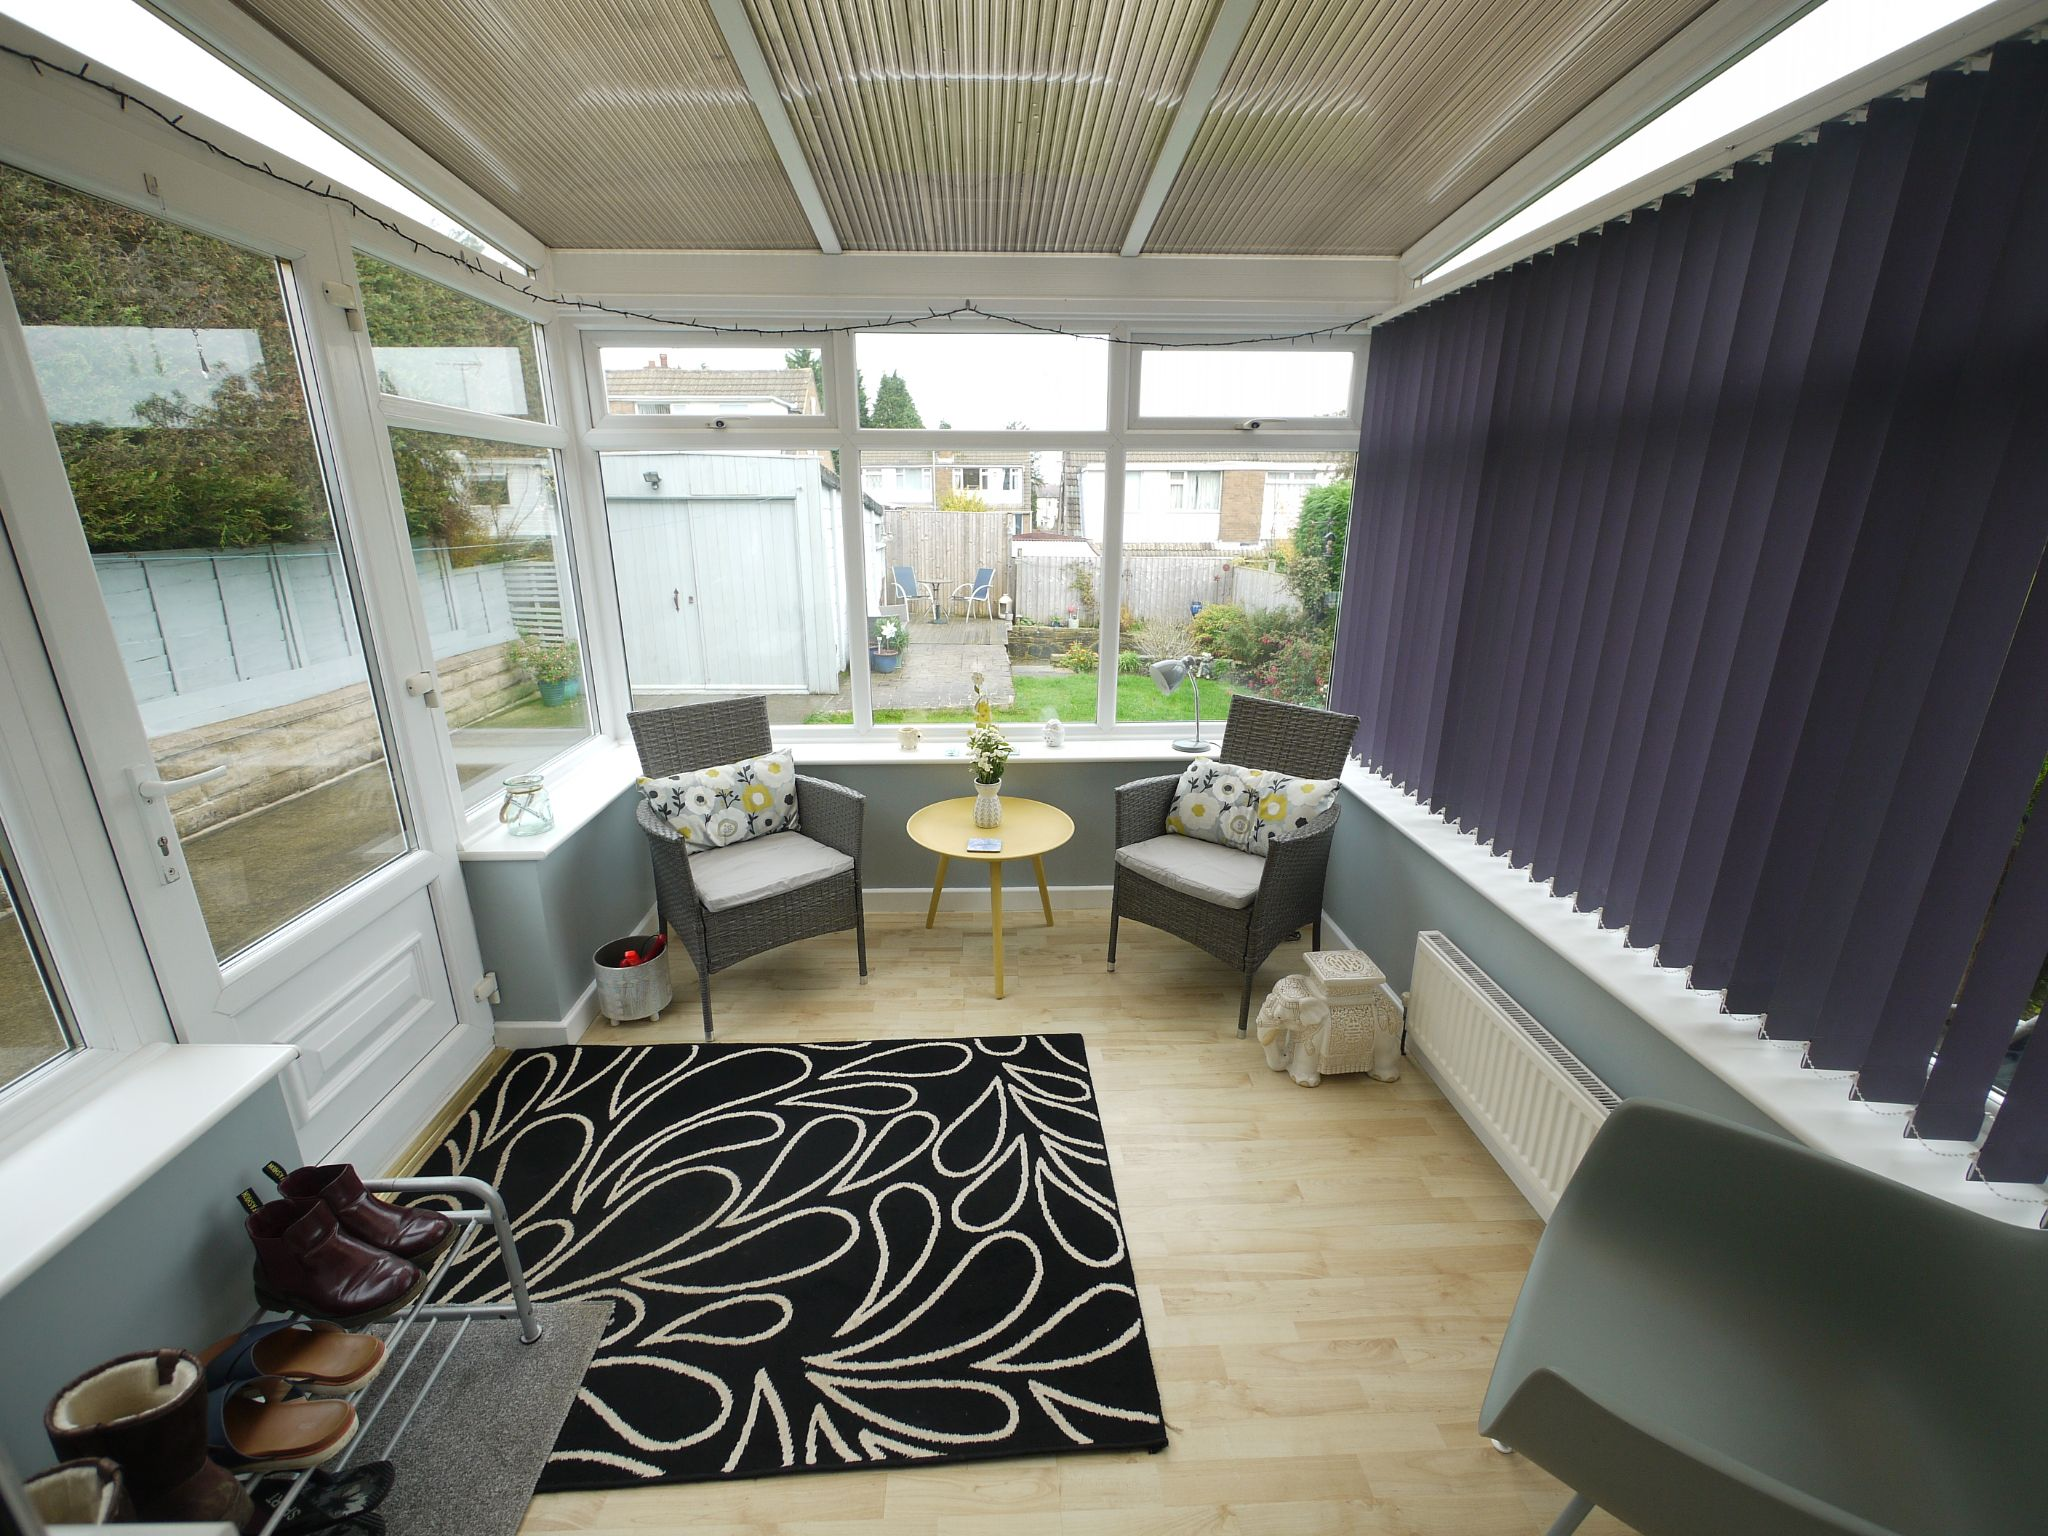 3 bedroom semi-detached house SSTC in Brighouse - Conservatory.